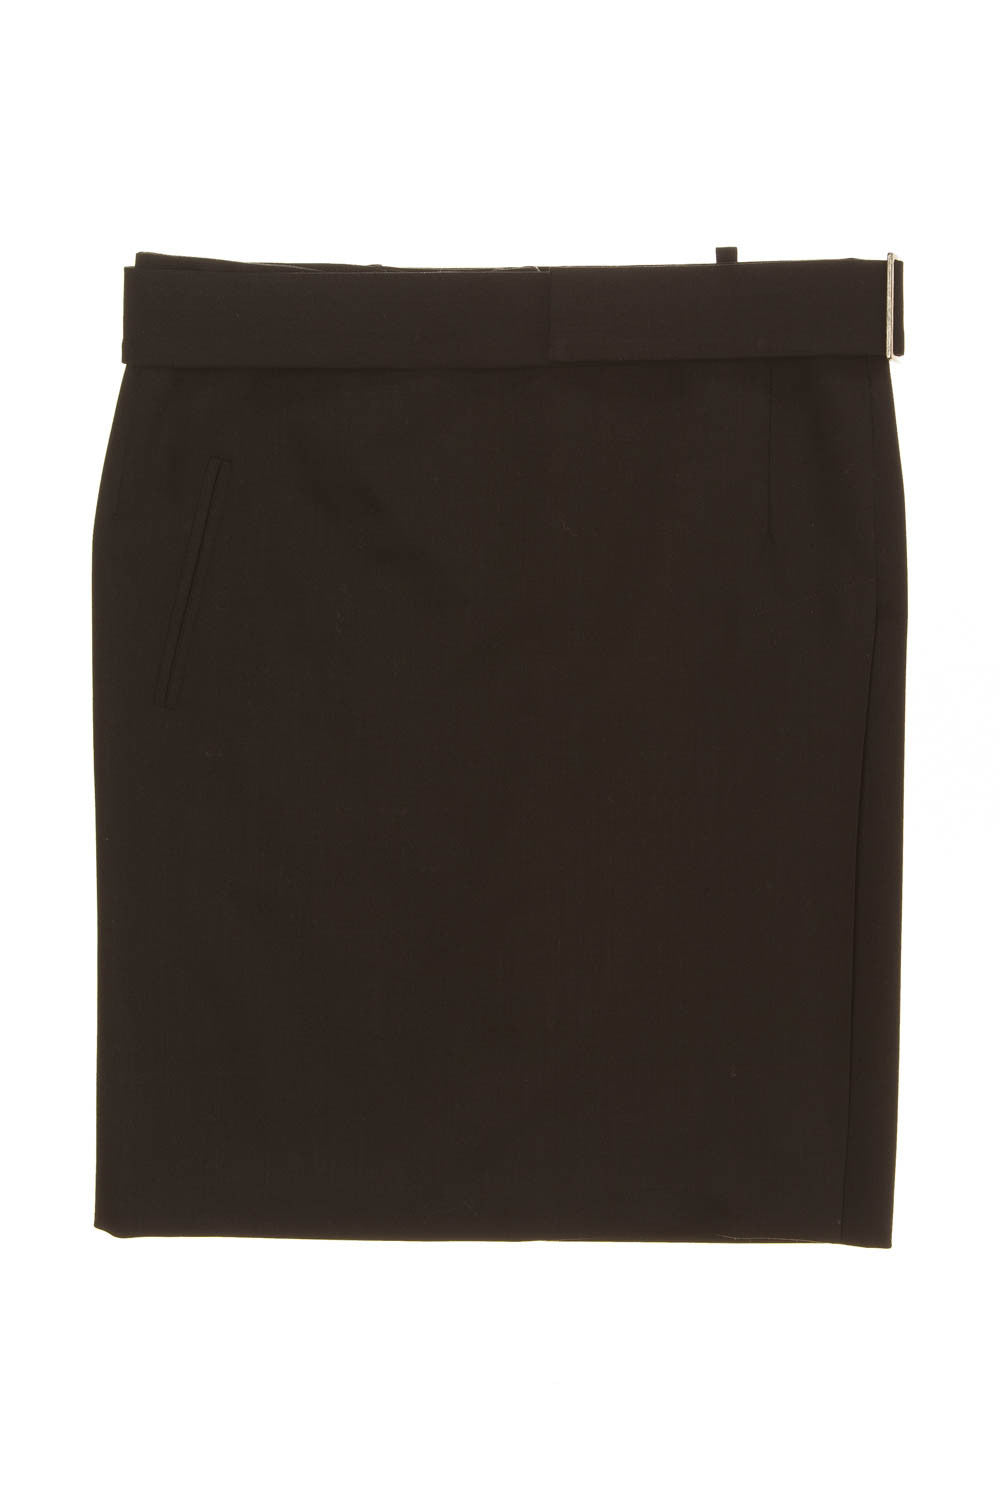 Costume National - New with Tags Black Mini Skirt with Belt  - IT 42